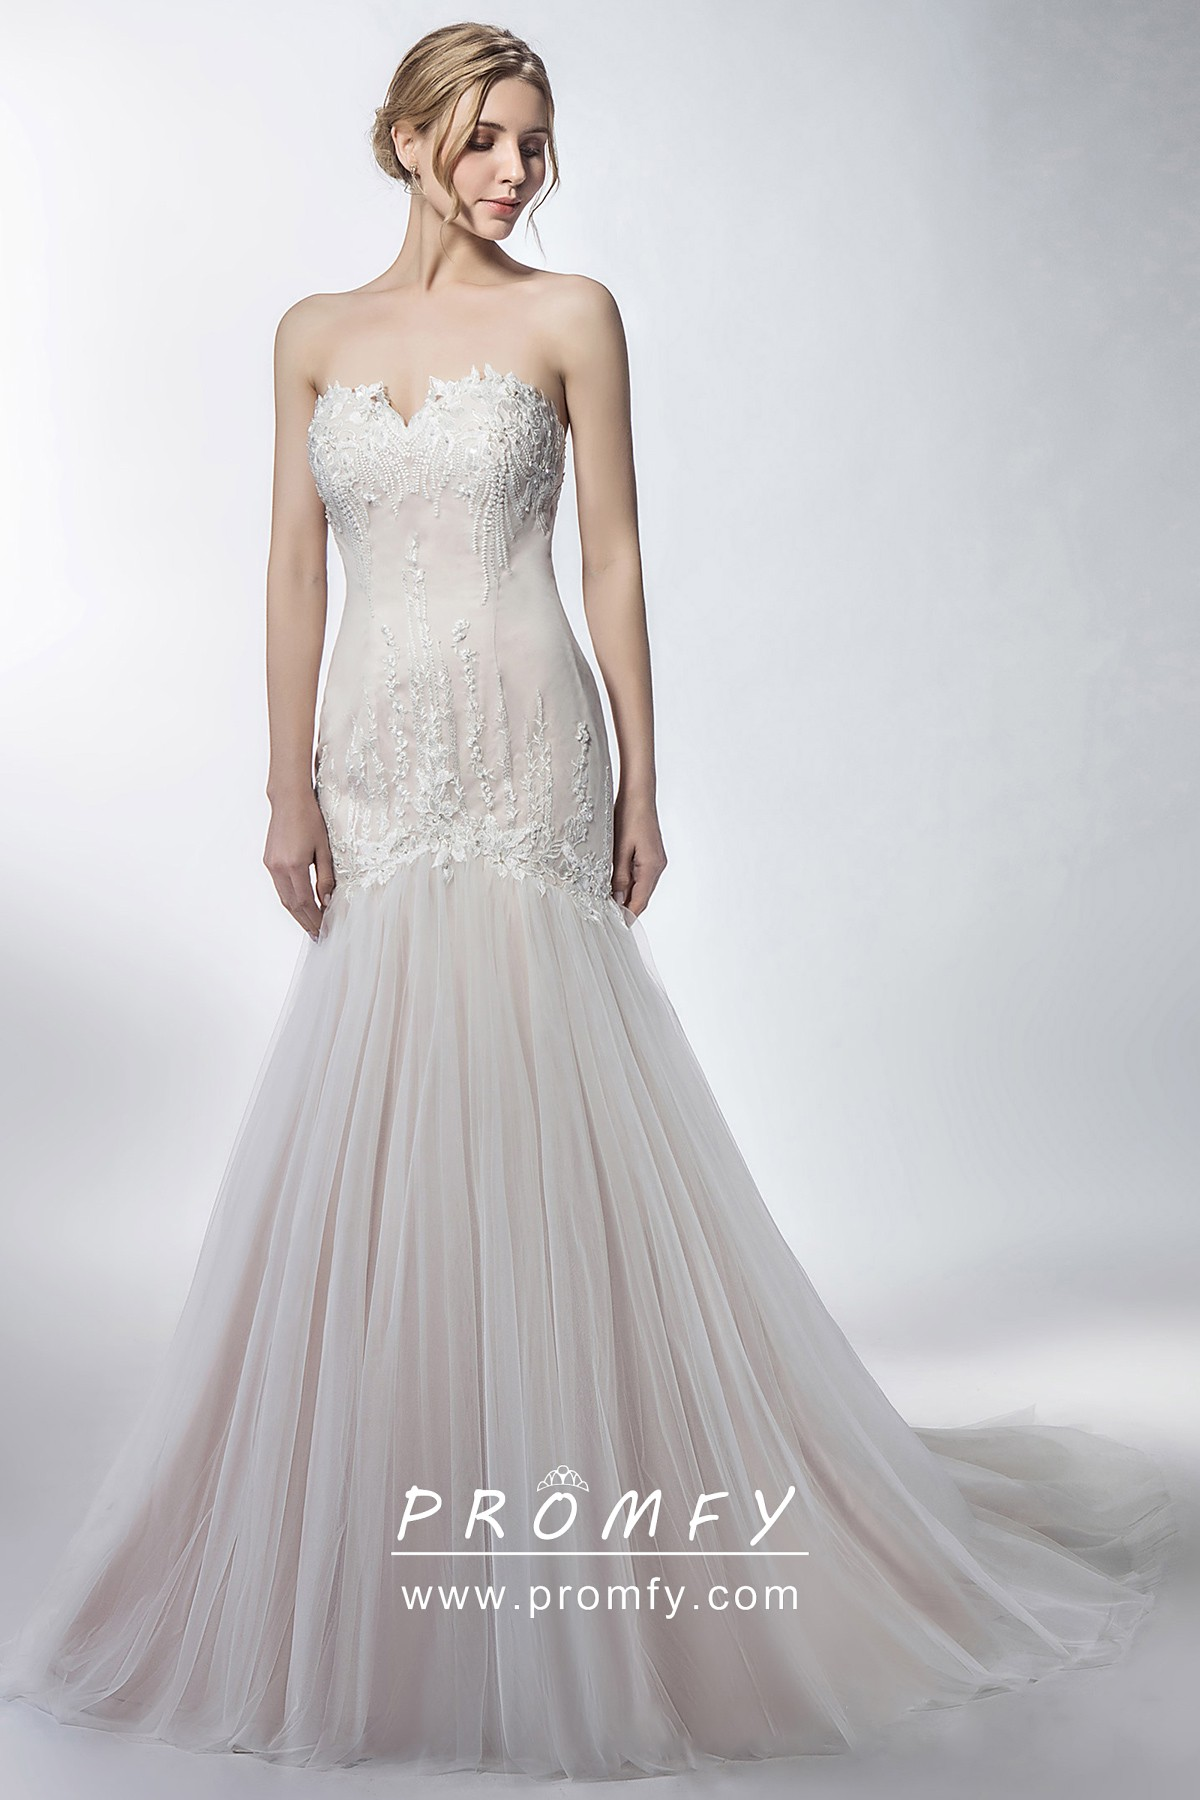 Lace Top Bateau Neck Drop Waist Bridal Gown With Layered Tulle Skirt Online Ucenter Dress Offers Tons Of High Quality Collections At Affordable